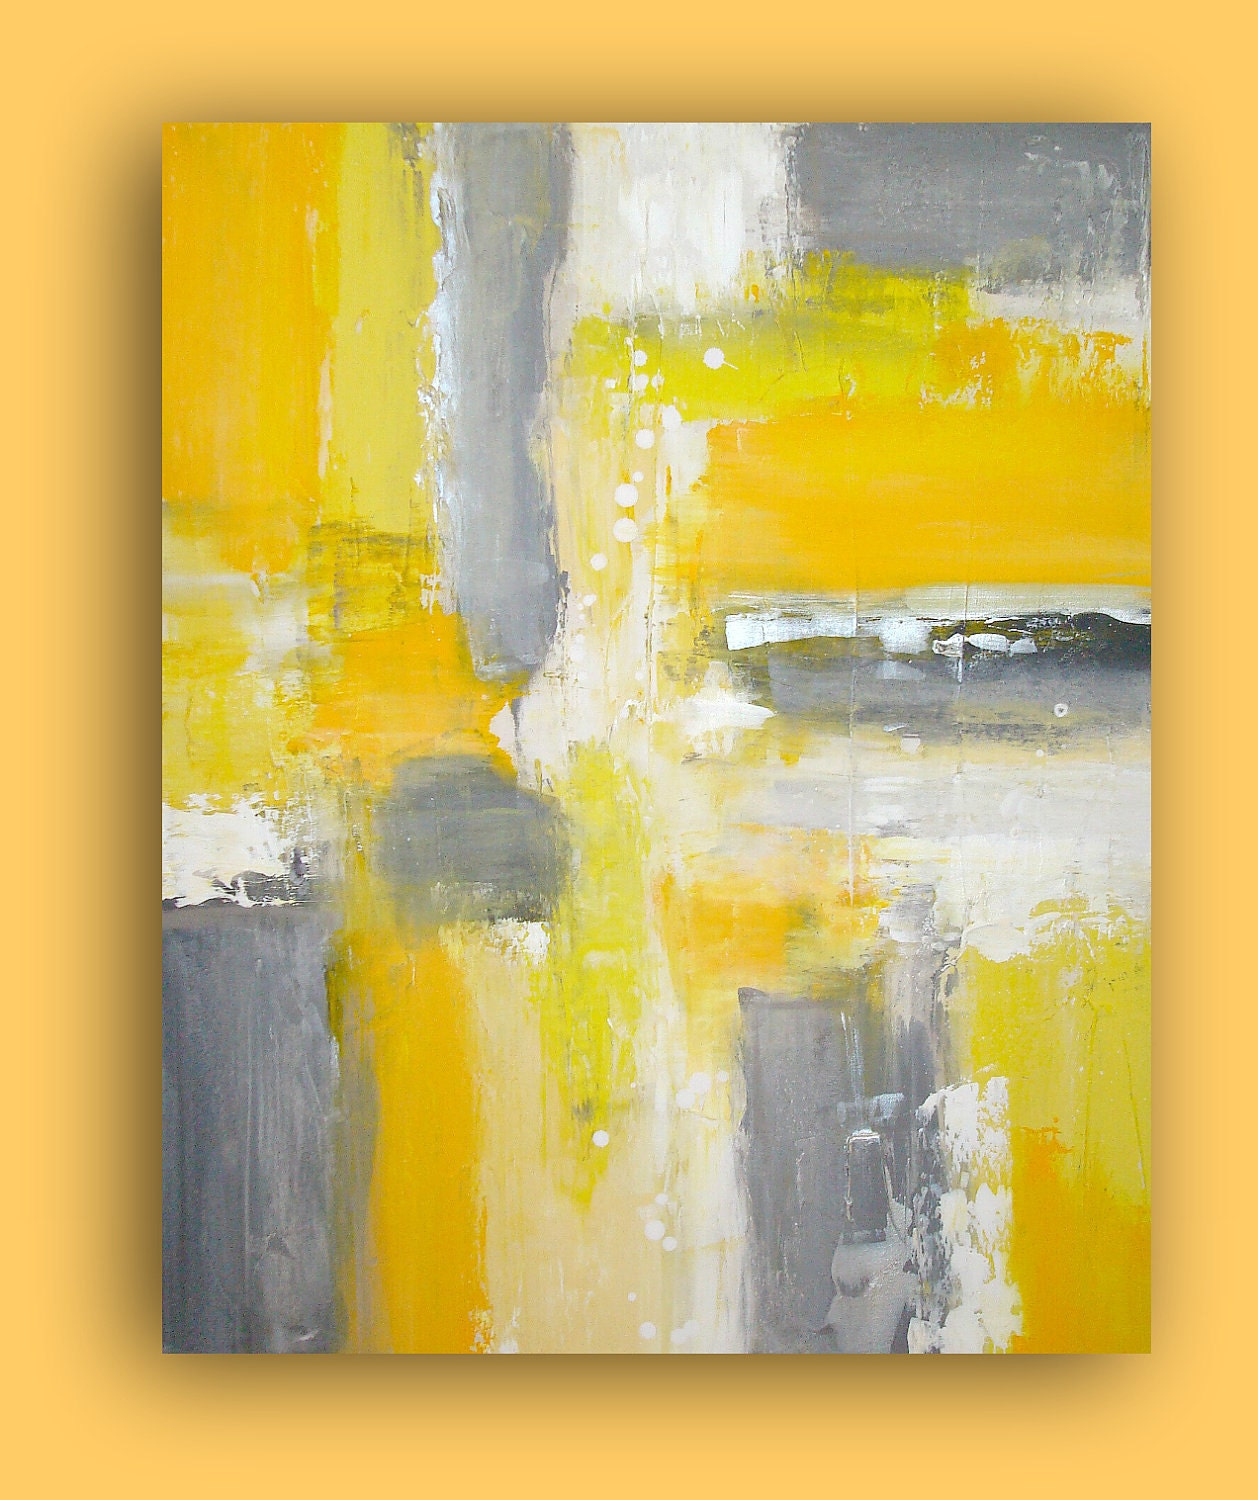 art original yellow and gray acrylic painting on gallery